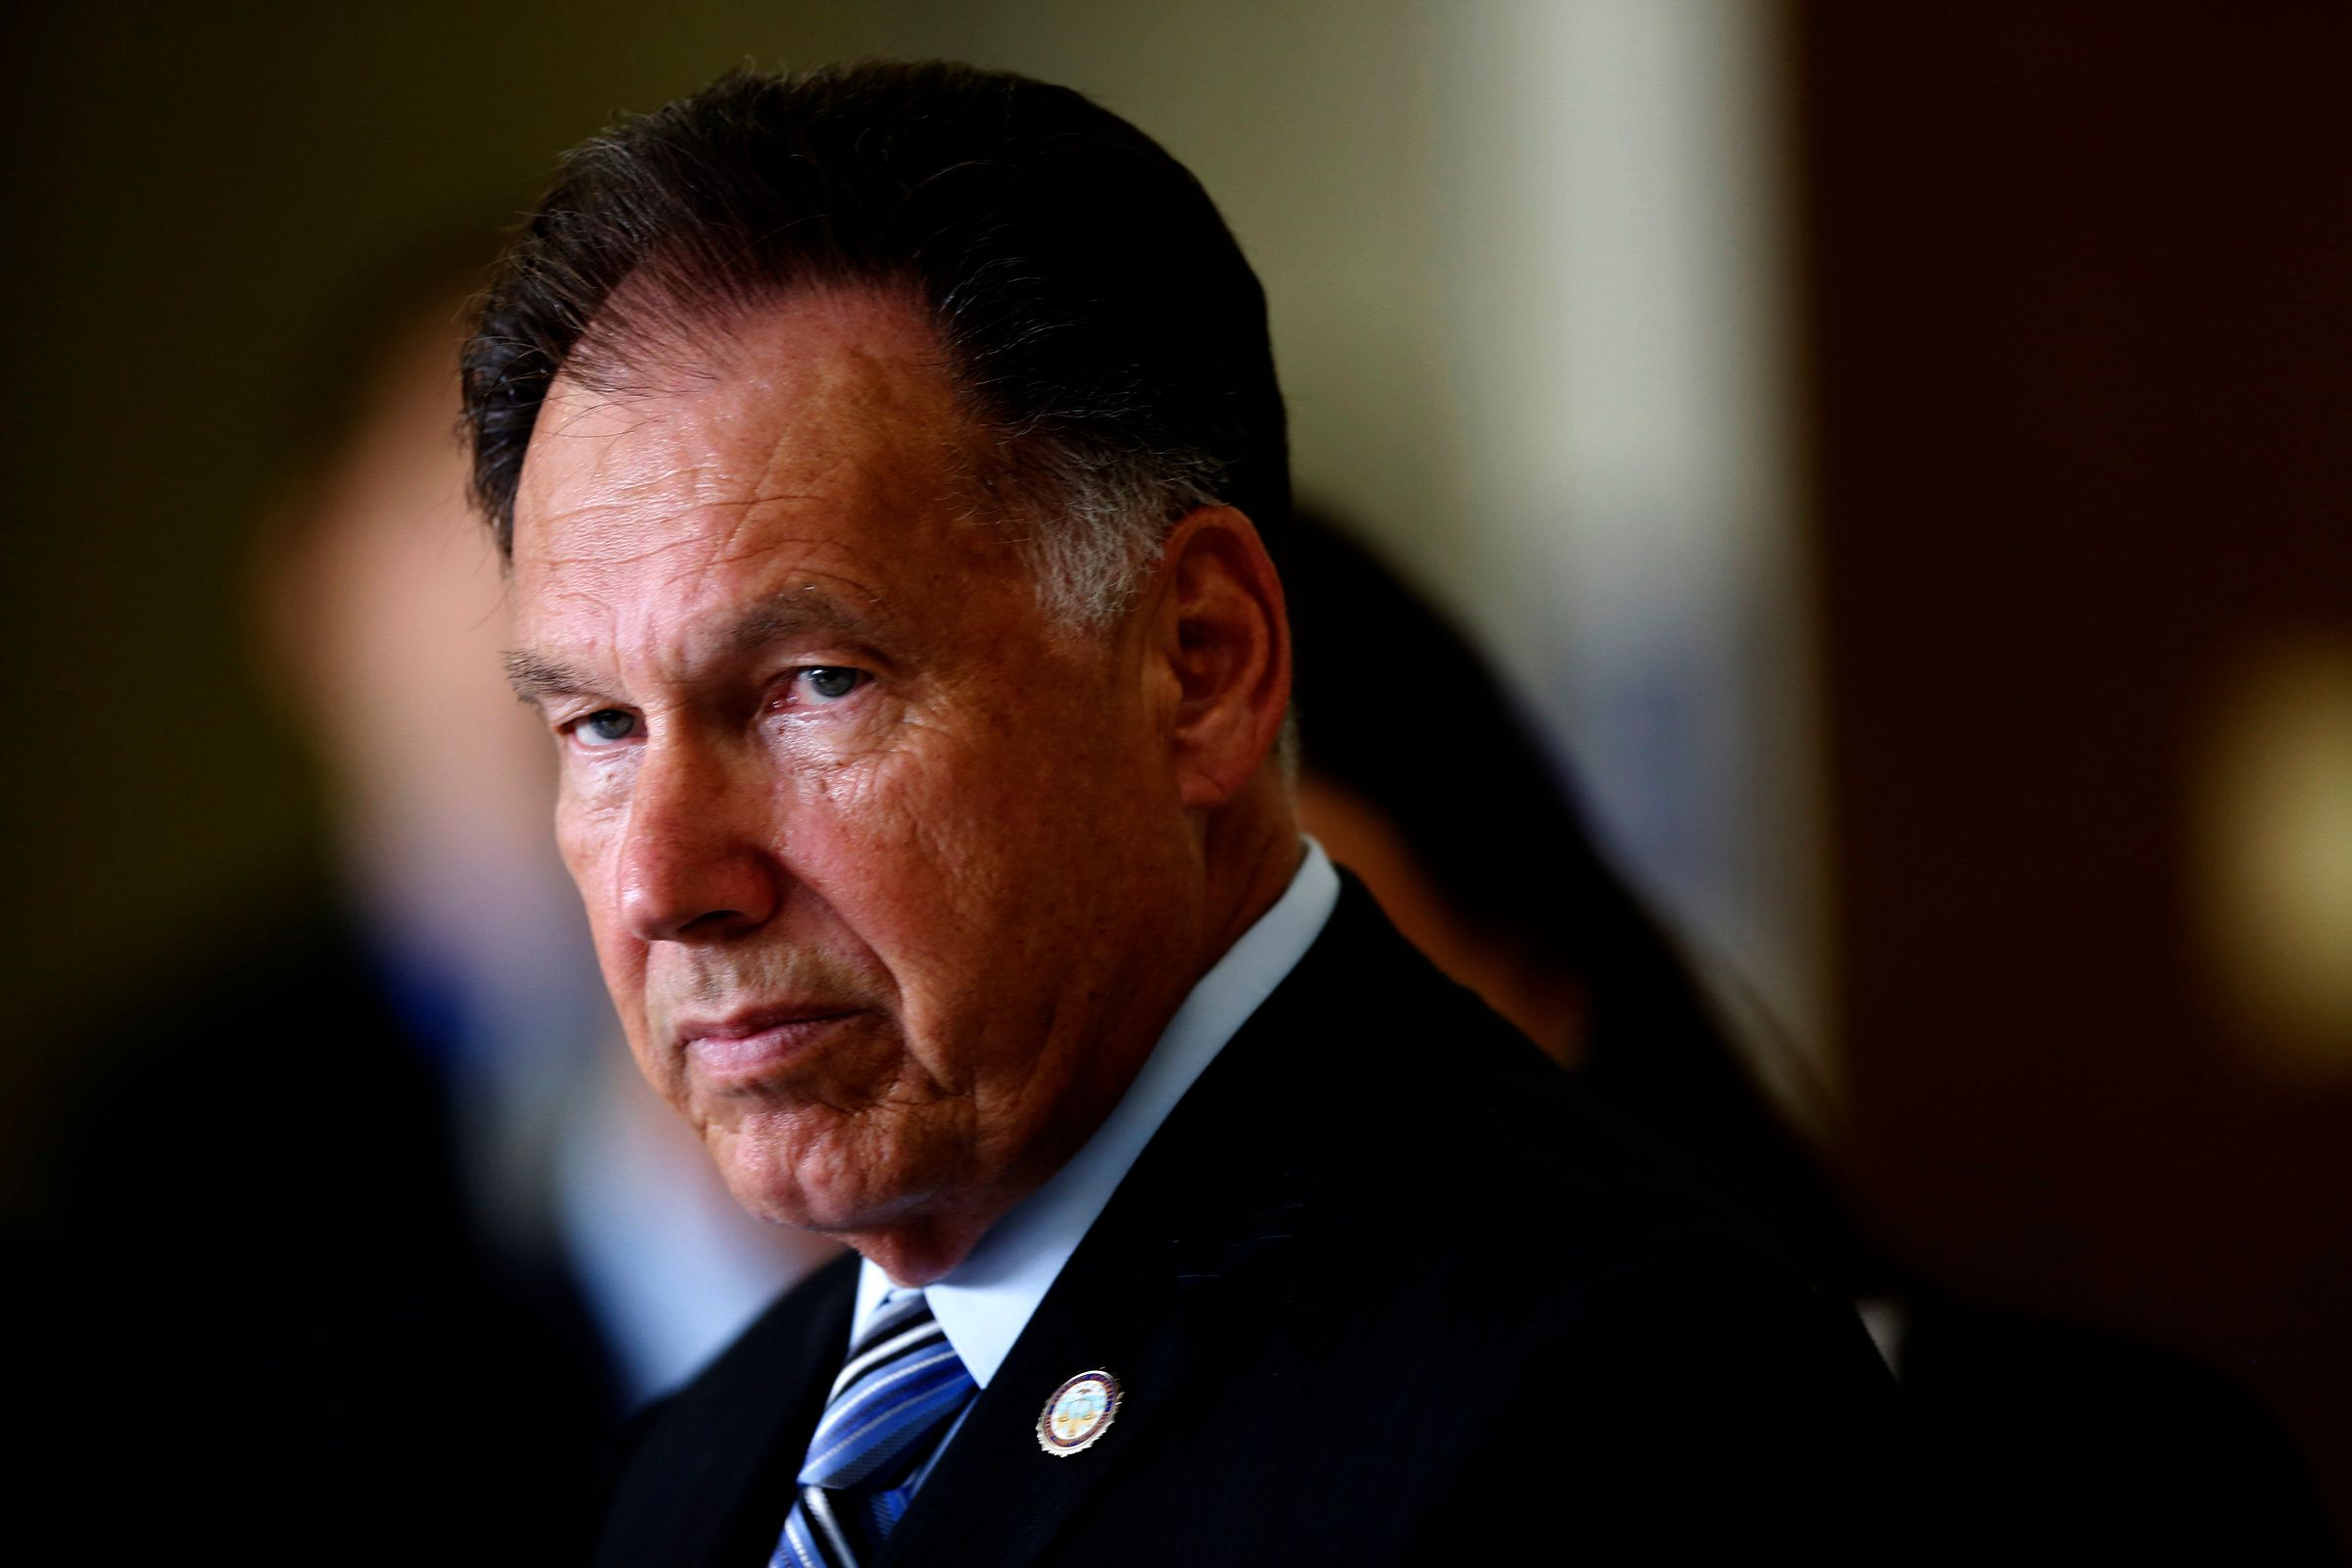 Orange County District Attorney Tony Rackauckas has been criticized in a wide-ranging jailhouse informant scandal.